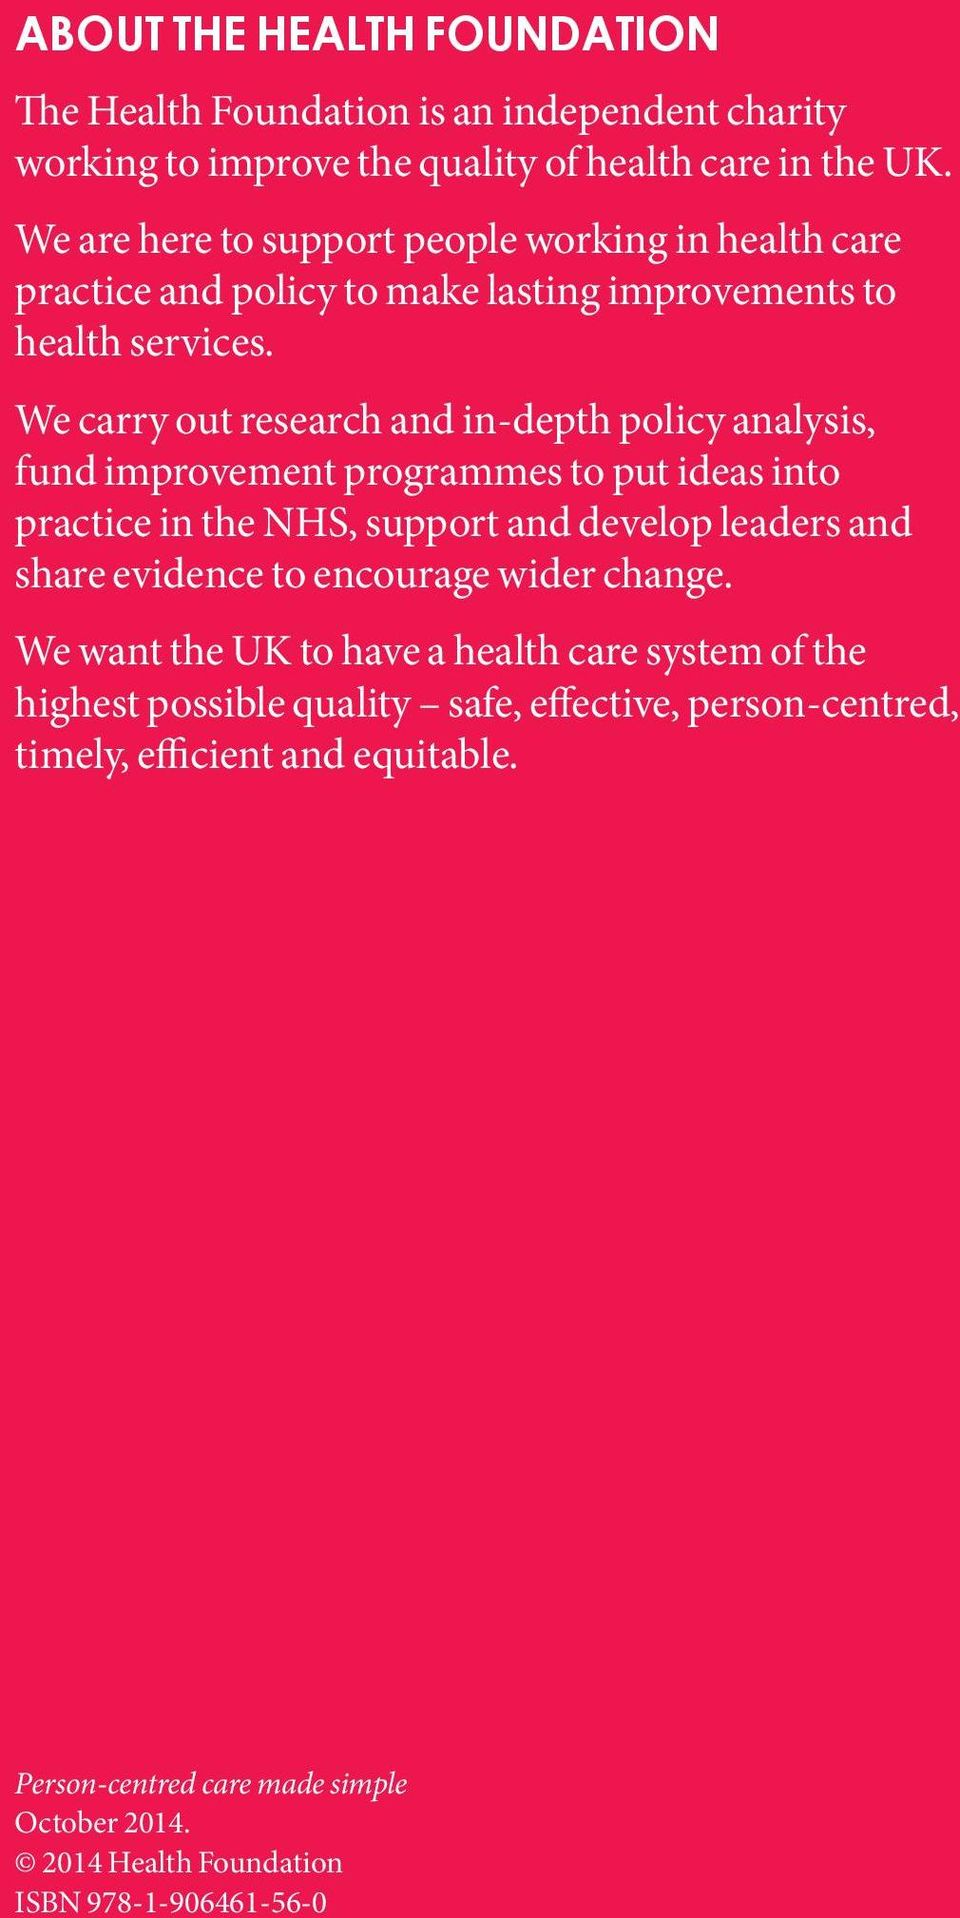 We carry out research and in-depth policy analysis, fund improvement programmes to put ideas into practice in the NHS, support and develop leaders and share evidence to